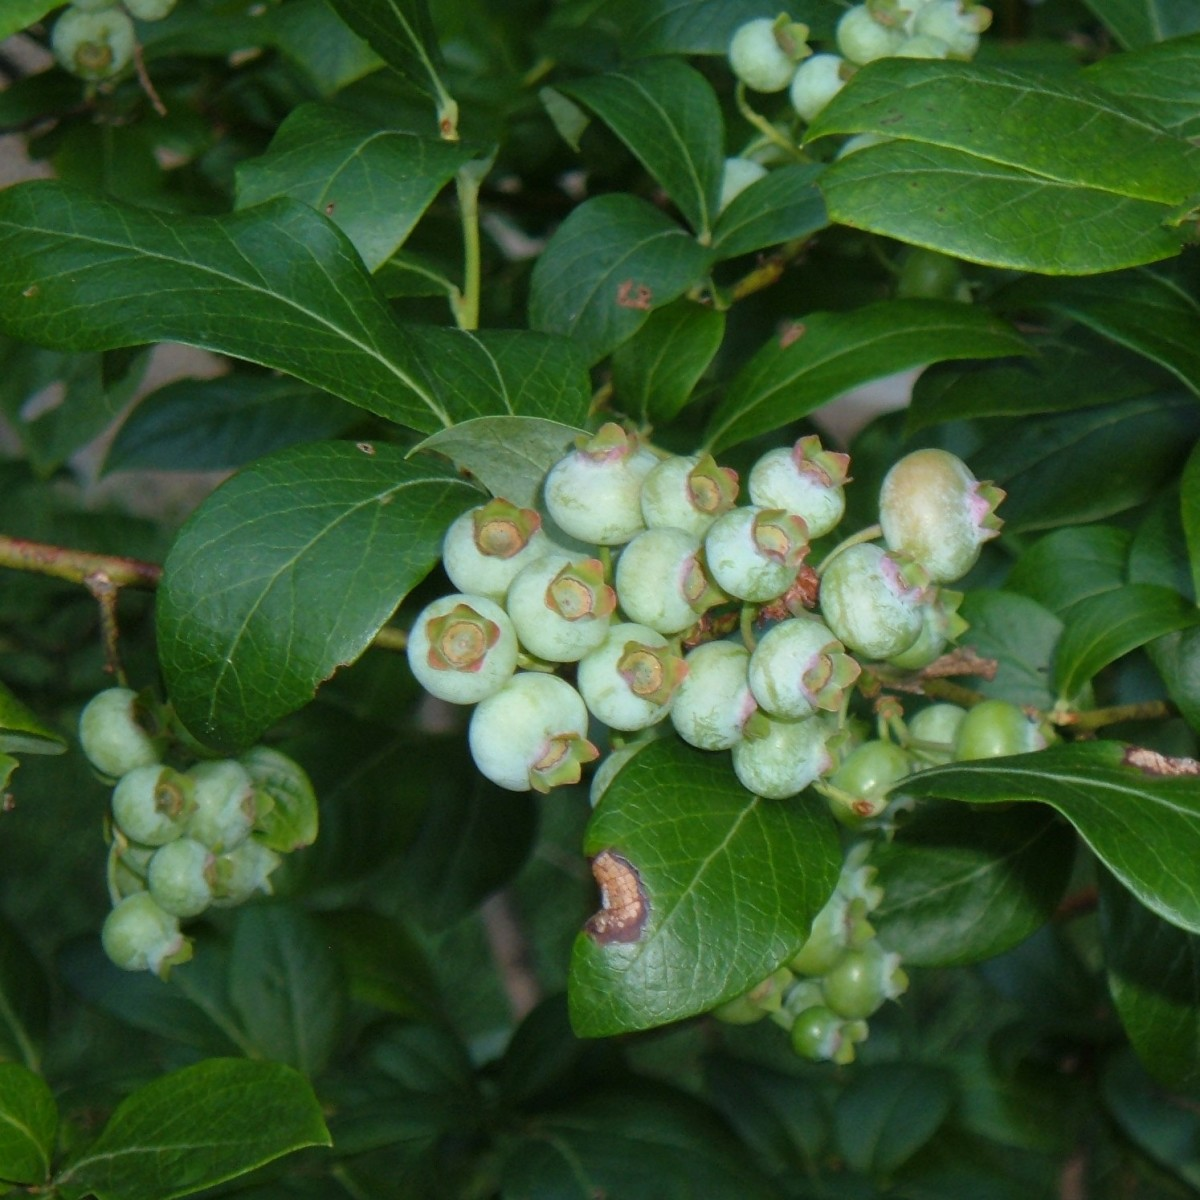 How To Grow Blueberry Bushes: Growing Blueberry Plants At Home